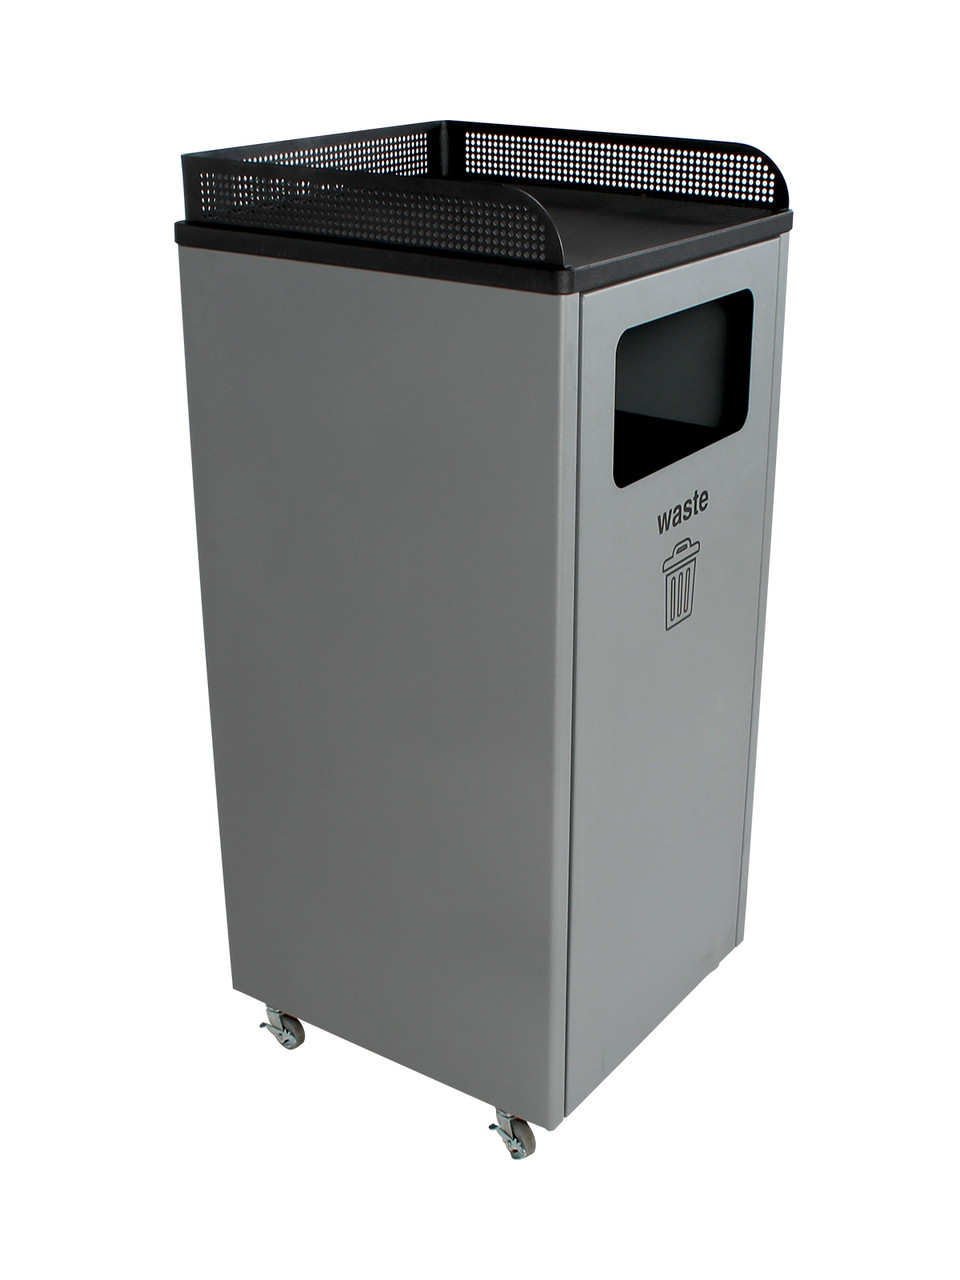 32 Gallon Metal COURTSIDE SINGLE Food Court Trash Can 810400 (WASTE)